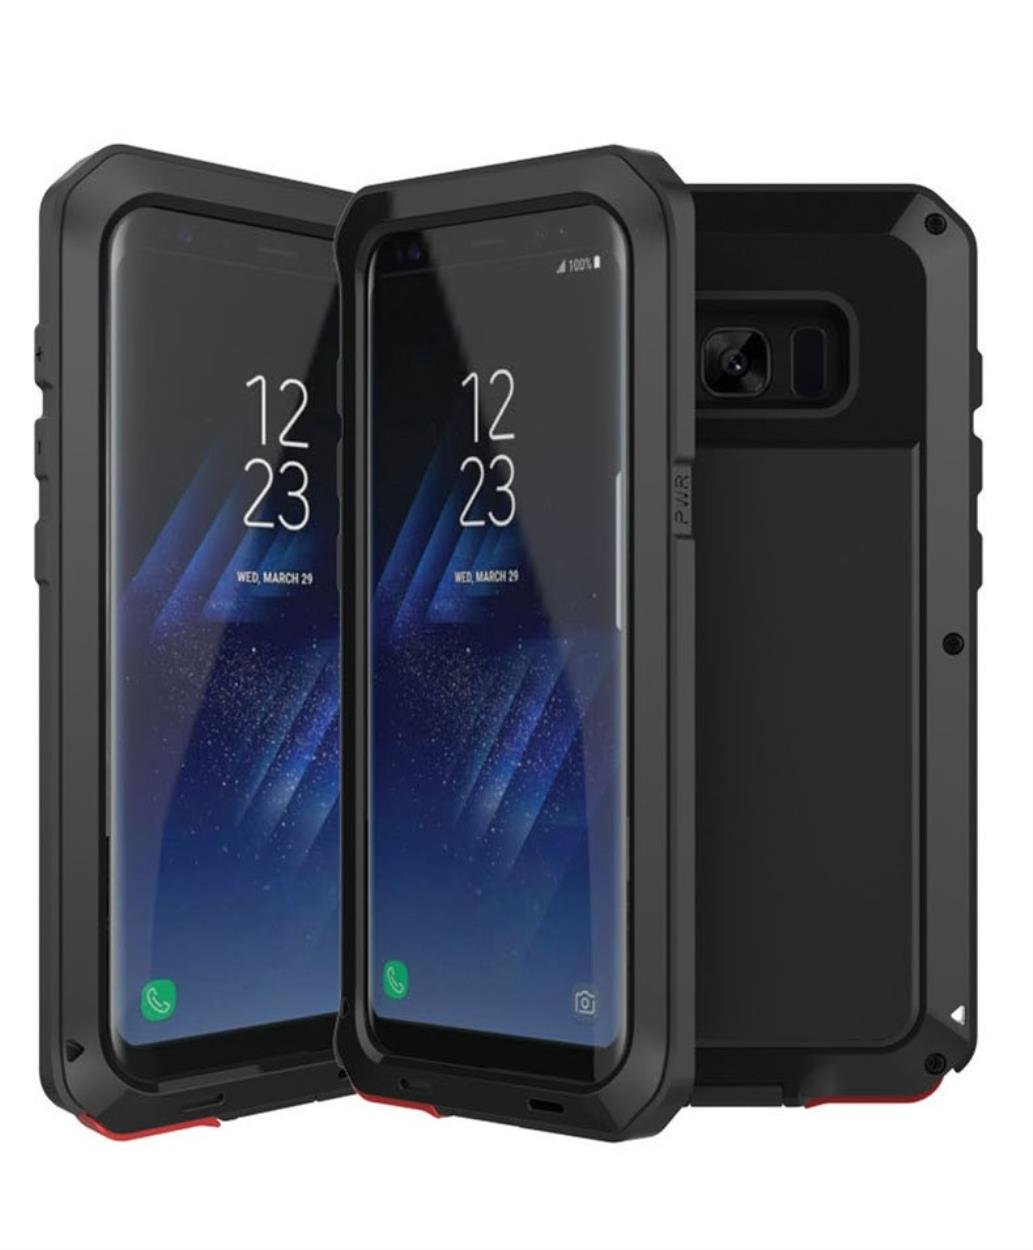 new style 049af 6336b Galaxy Note 5 Water Resistant Metal Case, CHEETOP Heavy Duty Full Body  Military Protective Shockproof Iron Armor Bumper Cover with Gorilla Glass  ...